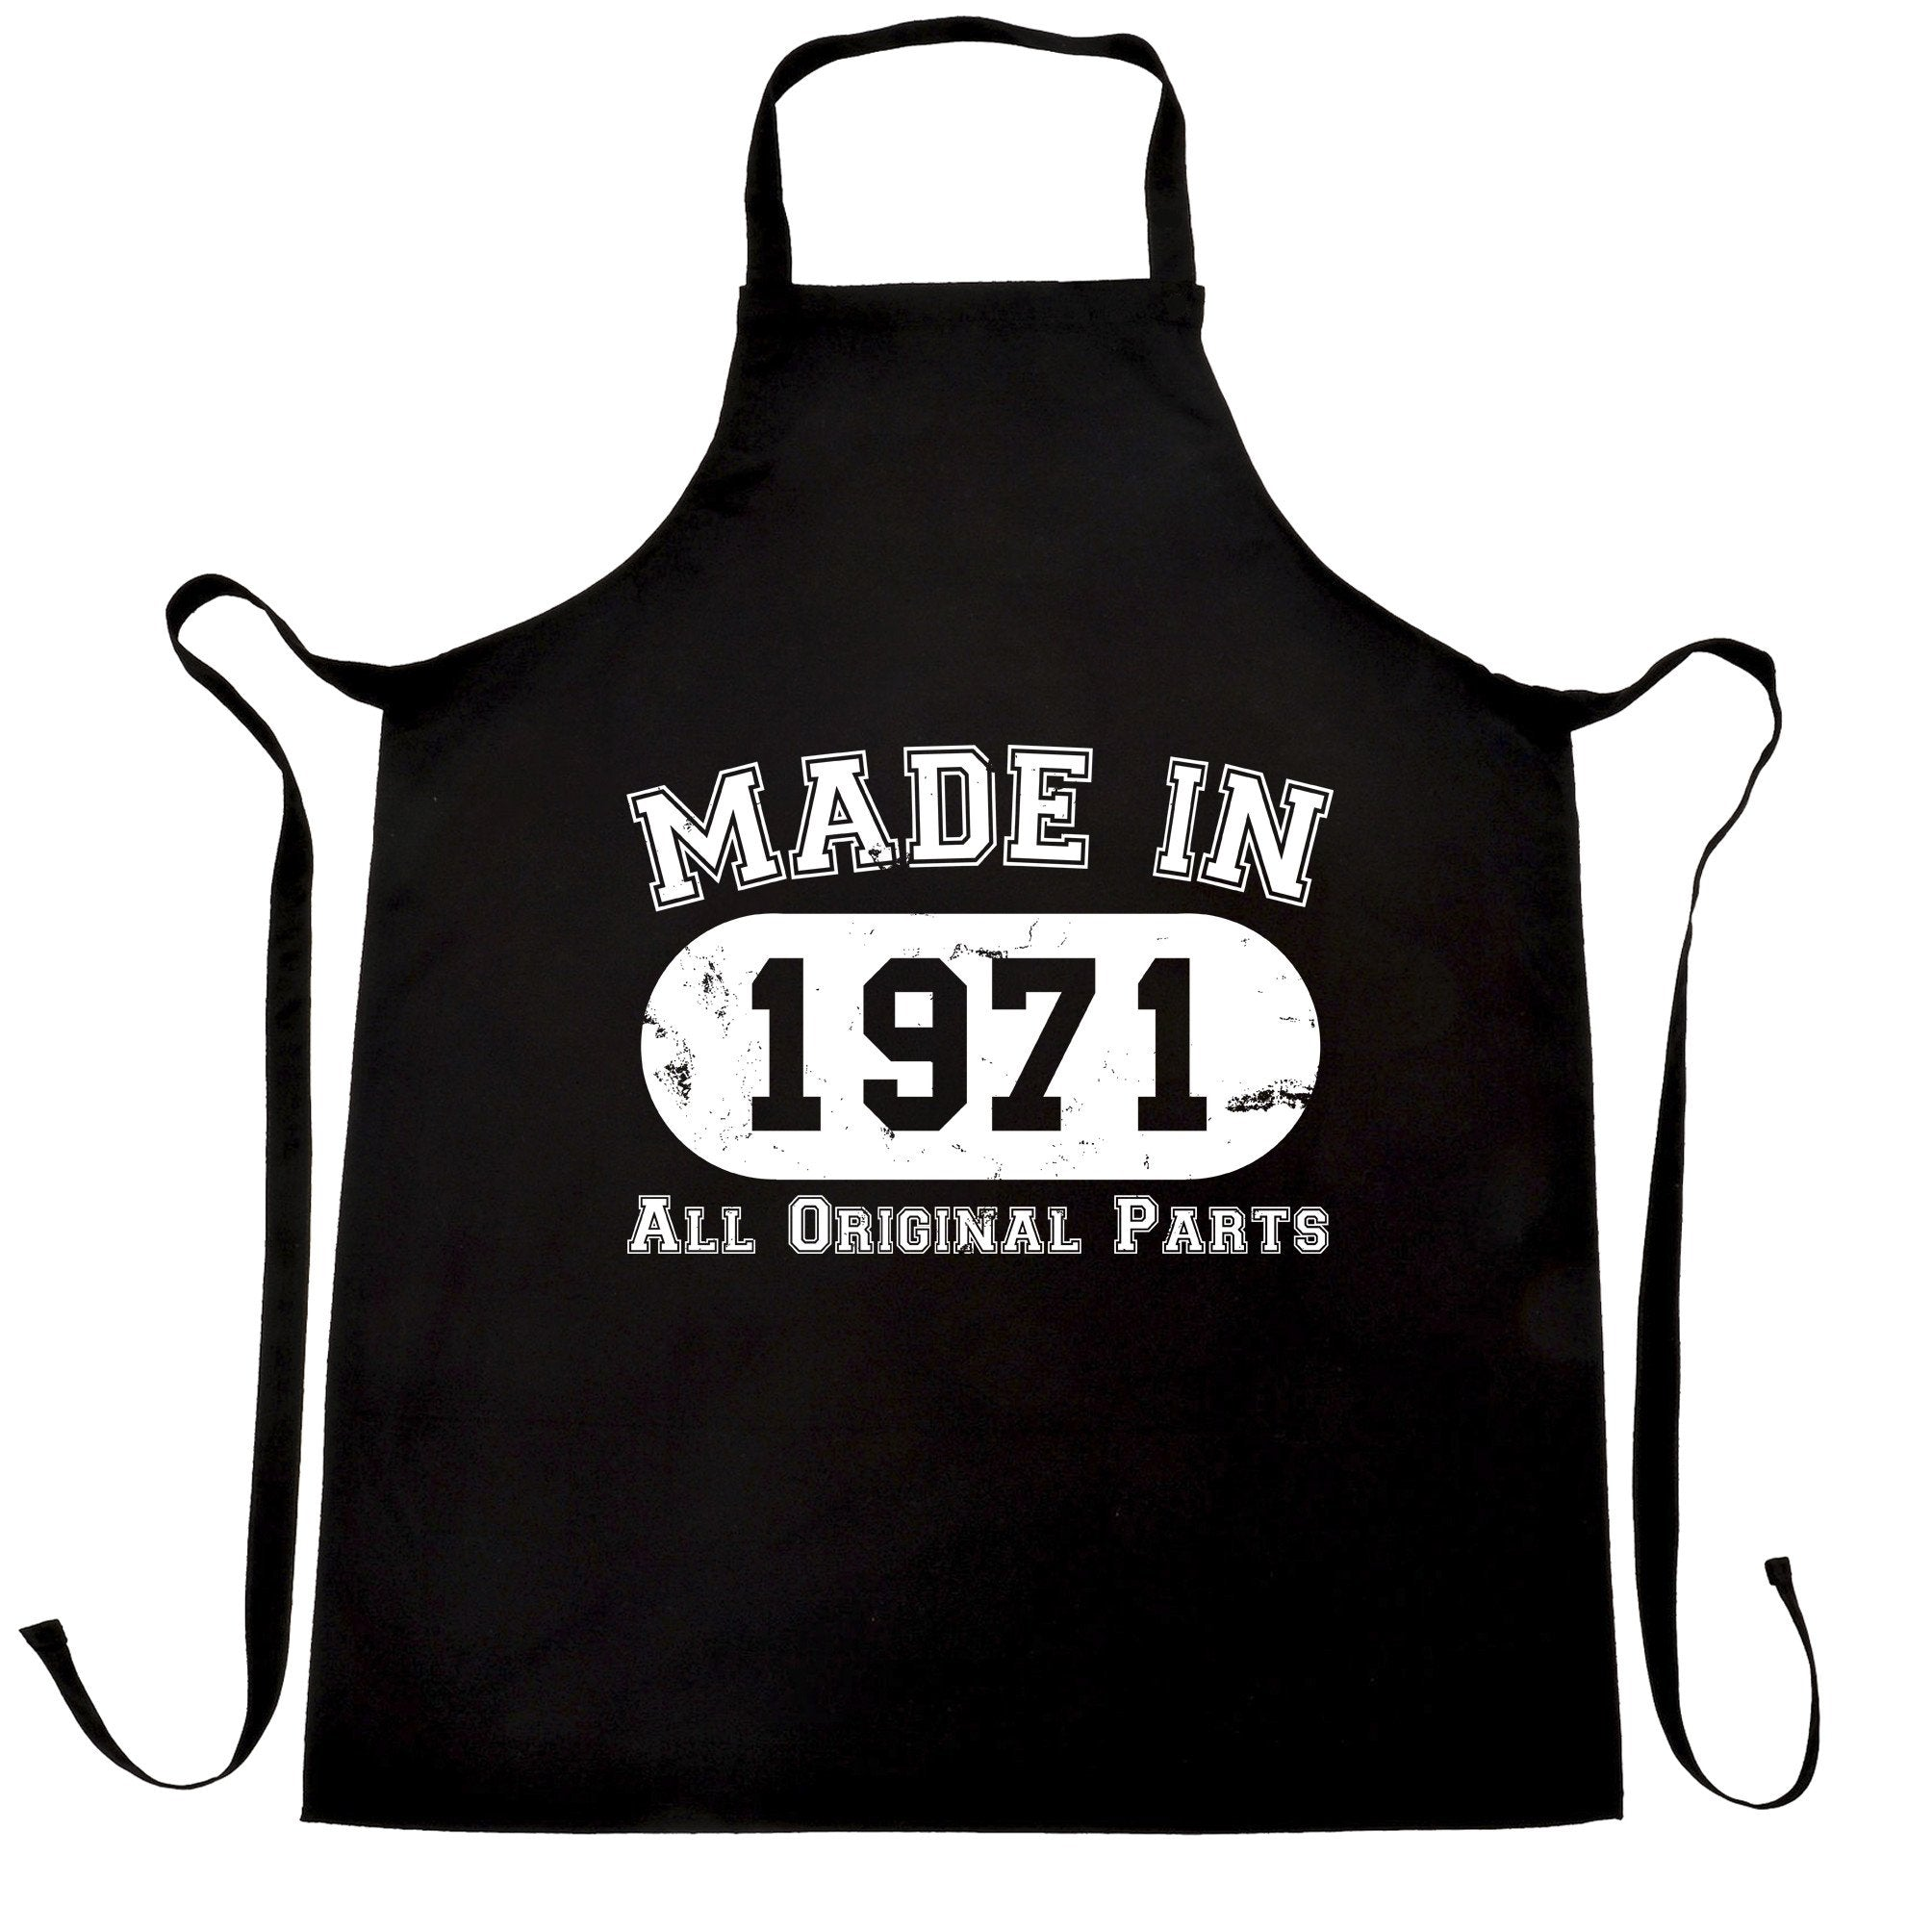 Made in 1971 All Original Parts Apron [Distressed]